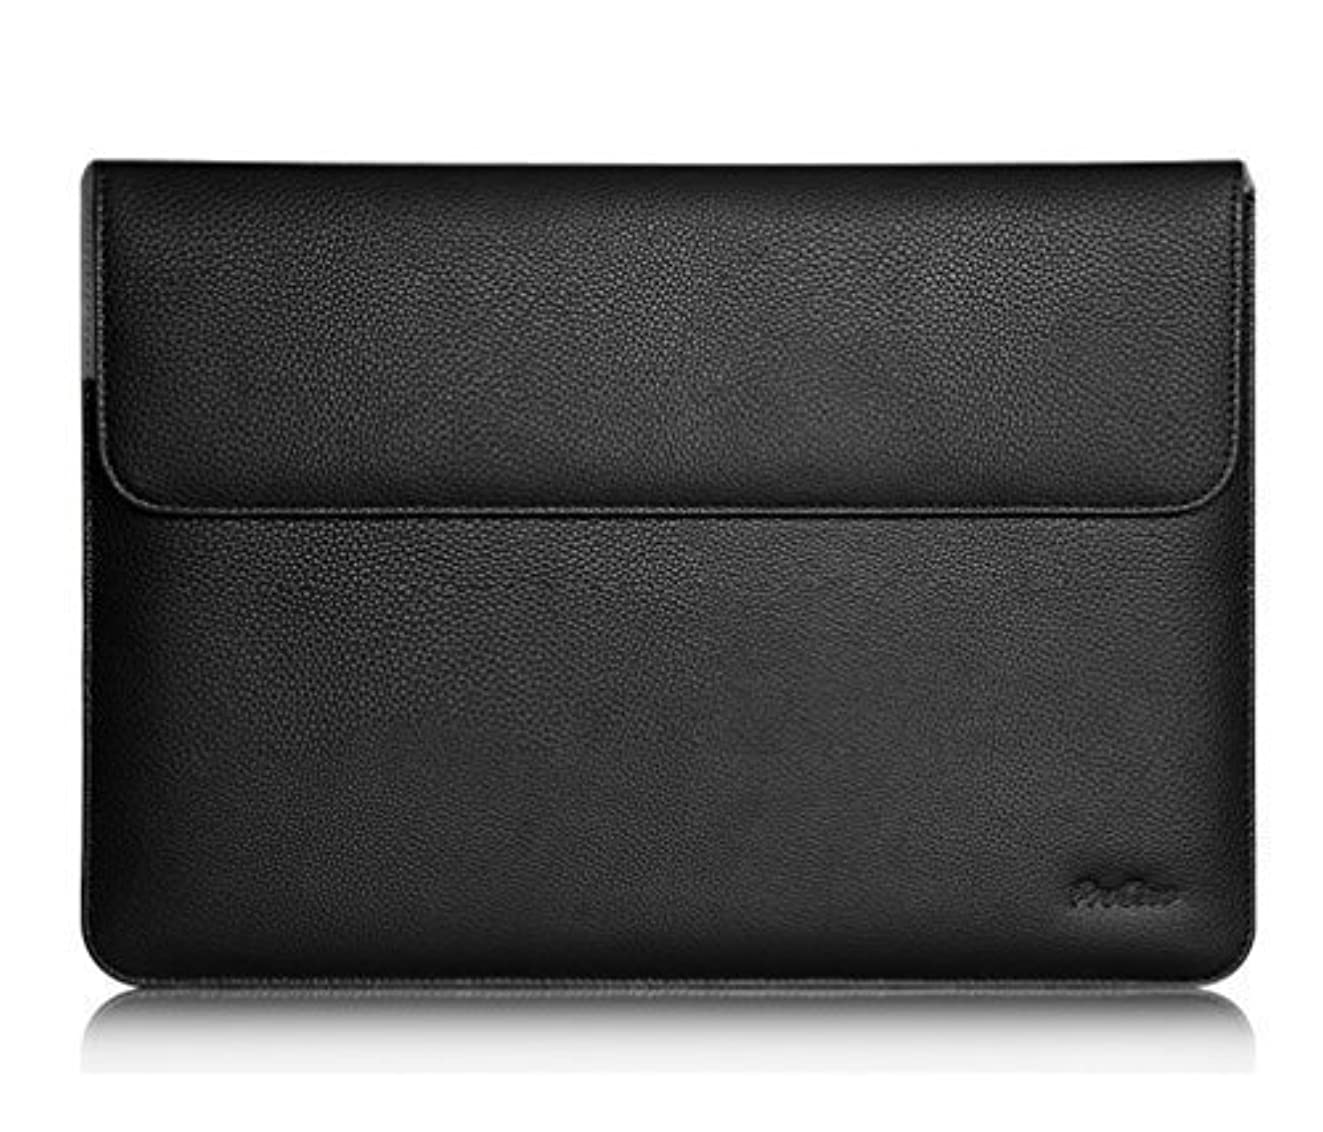 ProCase Surface Laptop 2017 / Surface Book MacBook Pro 13 Case Sleeve, Protective Sleeve Cover for 13